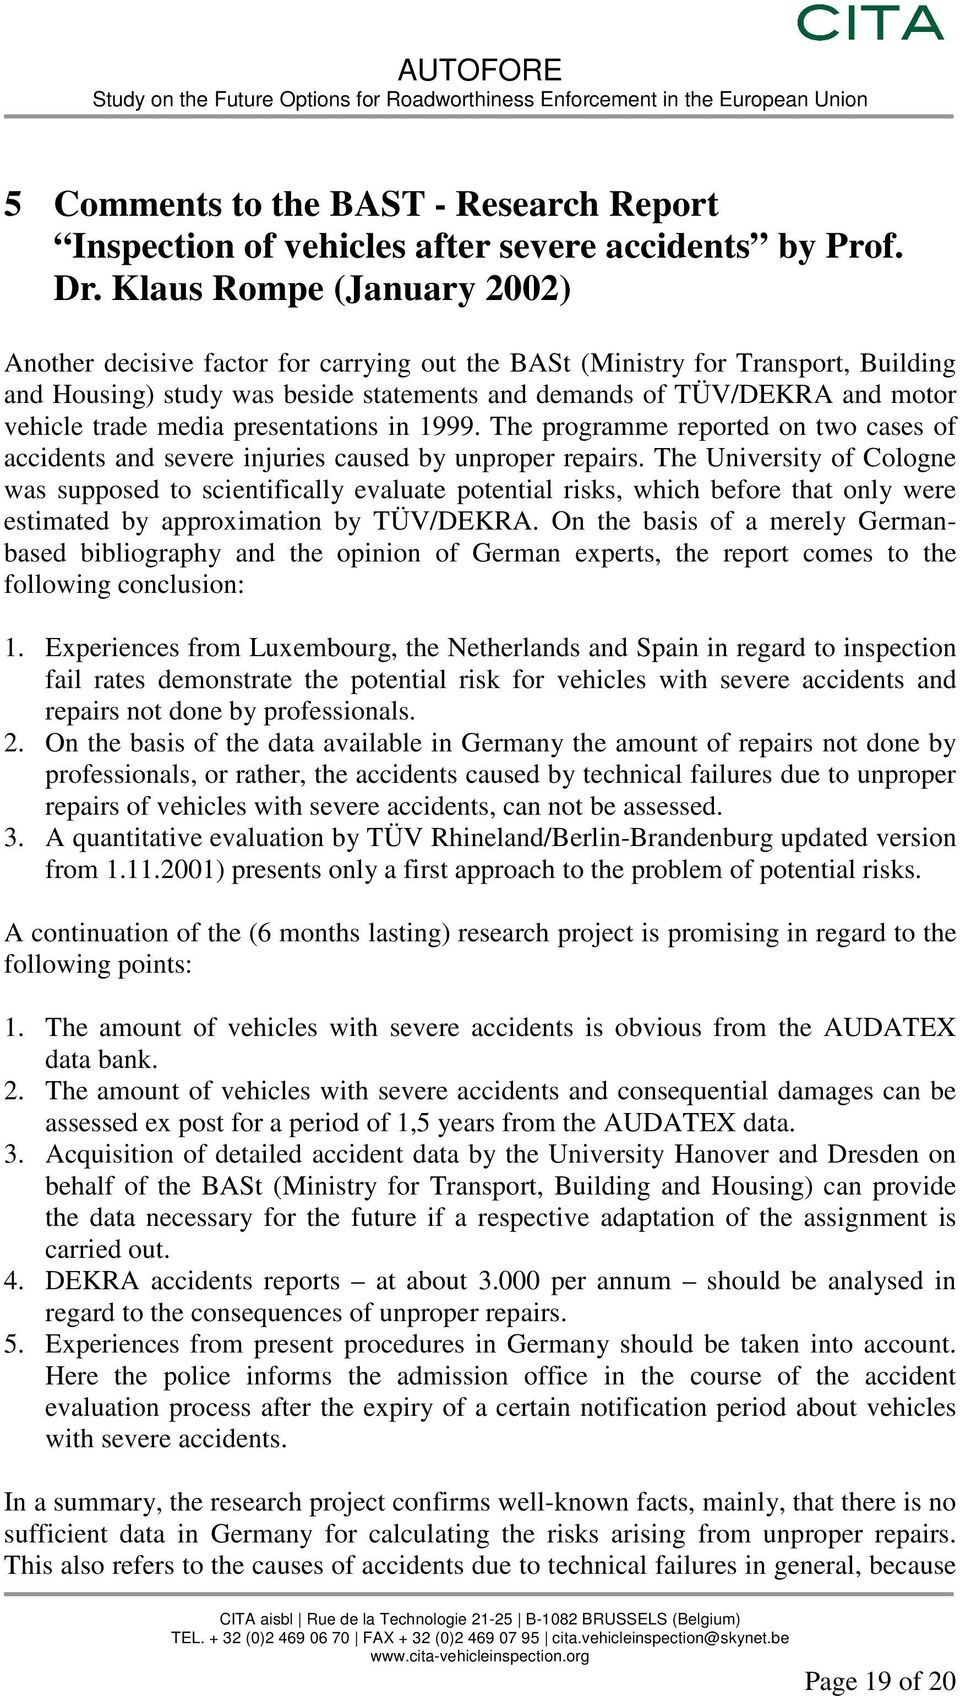 trade media presentations in 1999. The programme reported on two cases of accidents and severe injuries caused by unproper repairs.